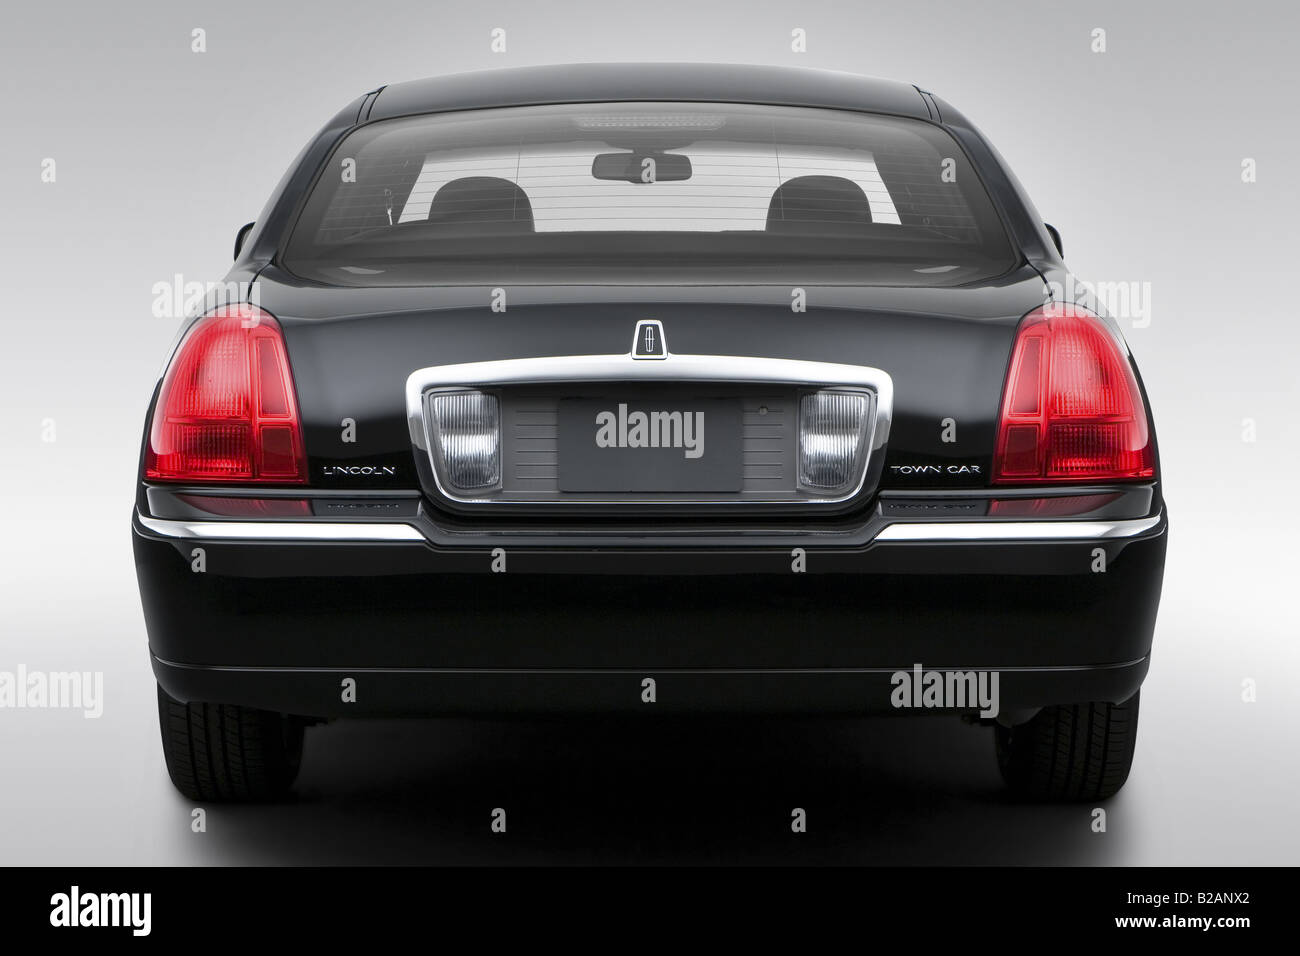 2008 Lincoln Town Car Signature Limited In Black Low Wide Rear